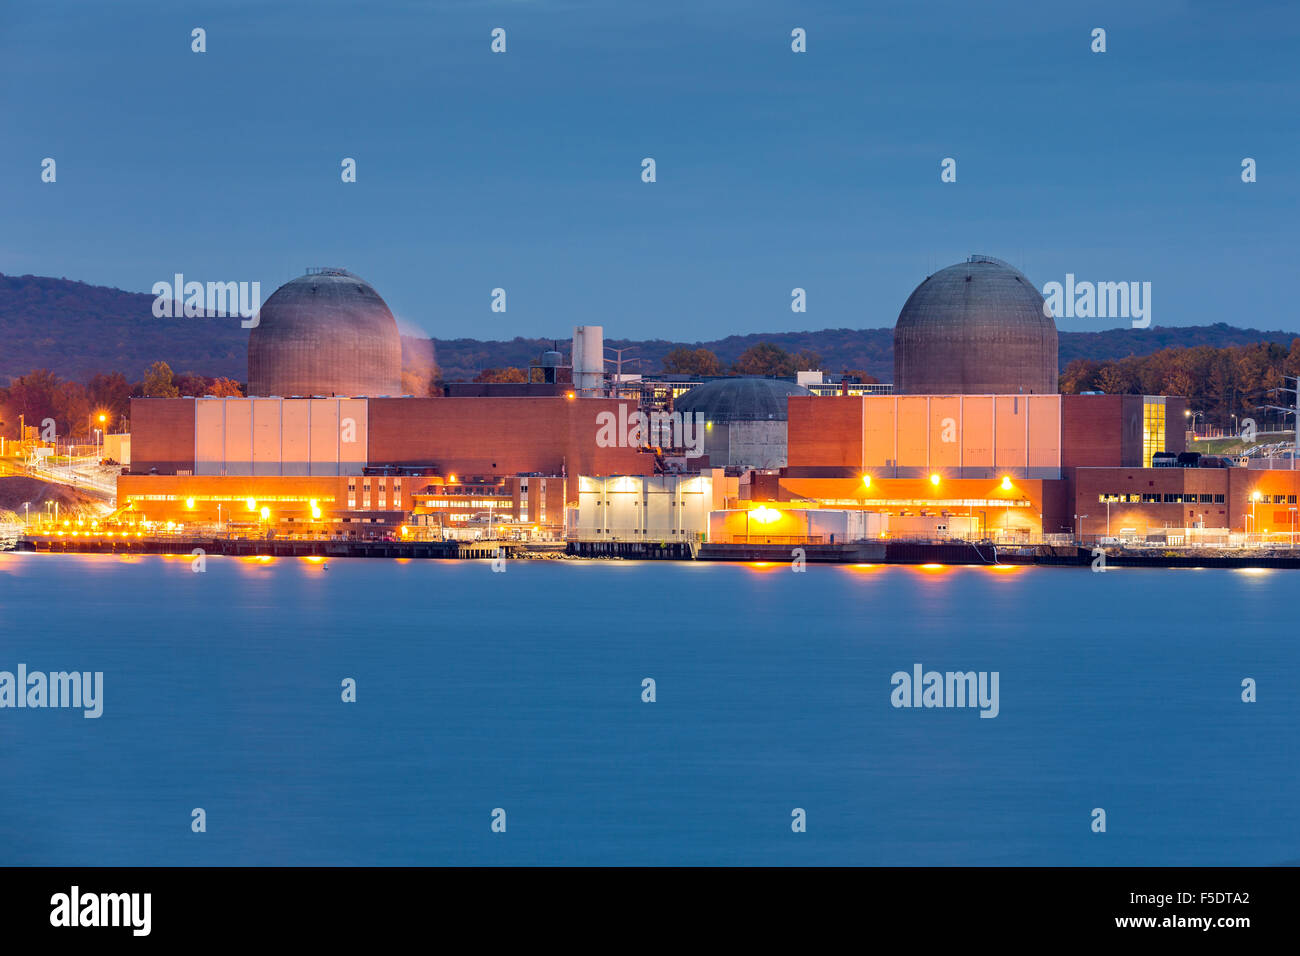 Nuclear power plant on the Hudson River, north of New York City - Stock Image